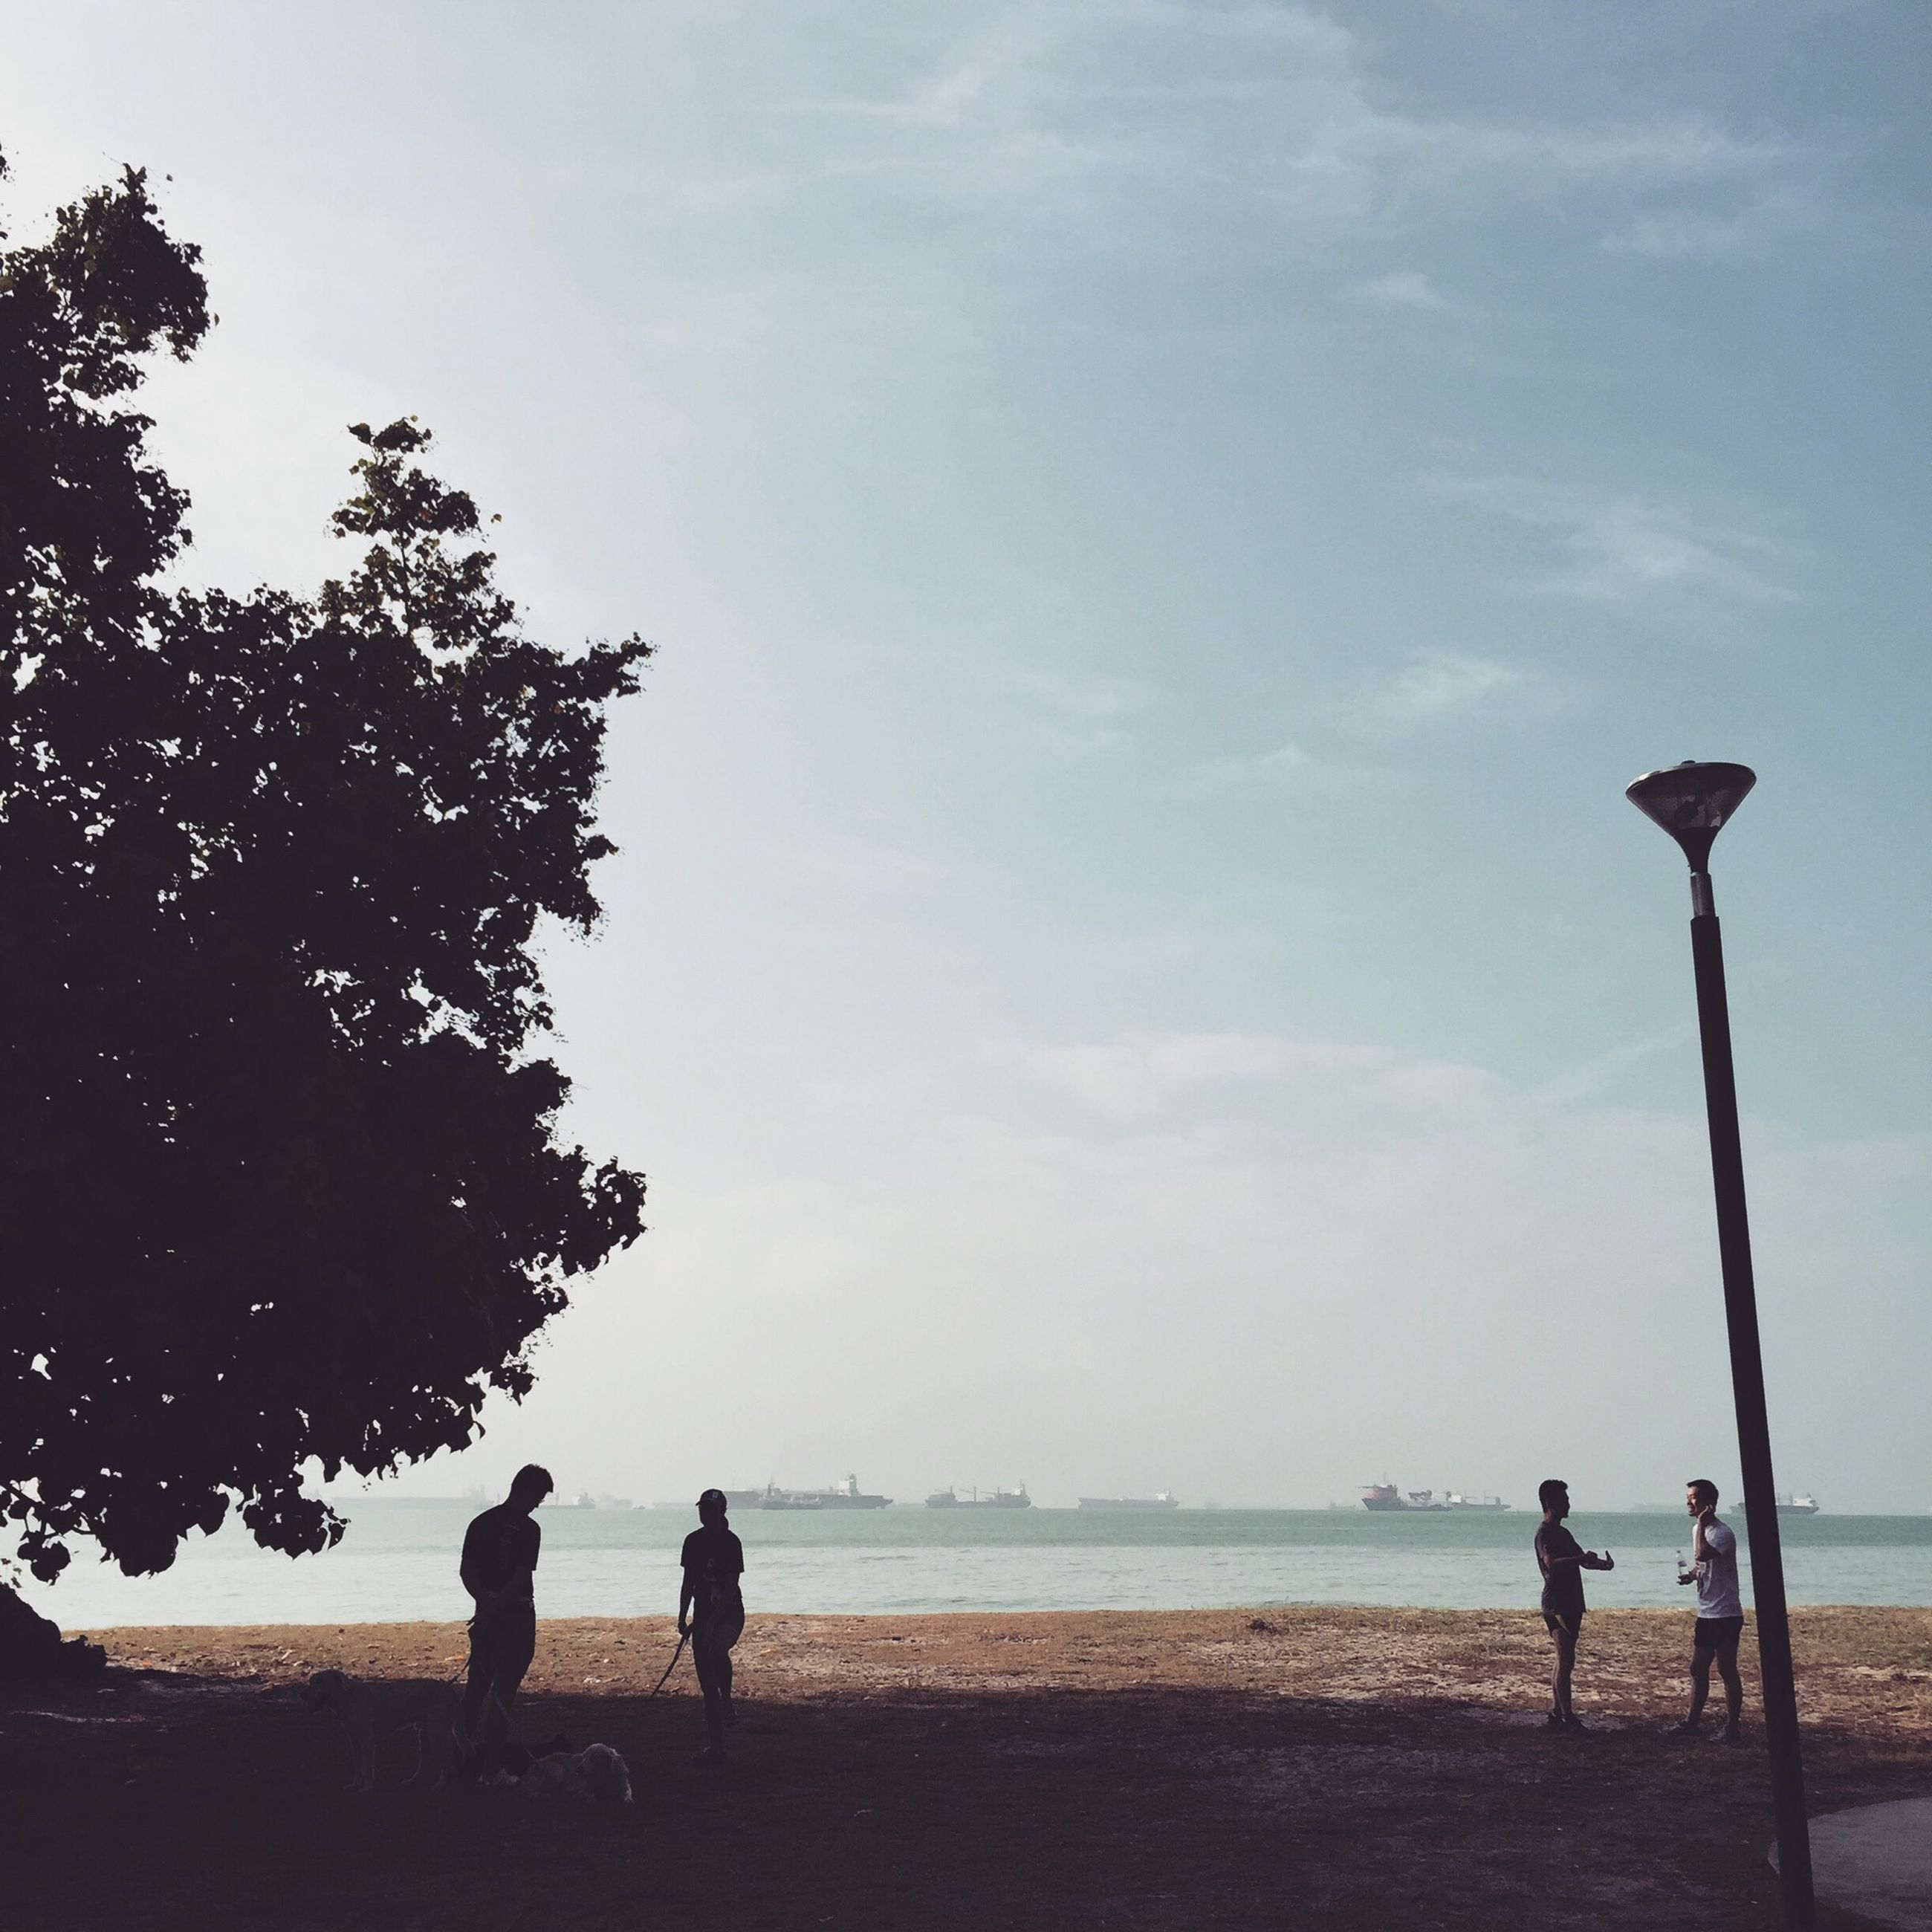 sky, water, sea, horizon over water, beach, lifestyles, leisure activity, silhouette, men, rear view, tranquility, full length, standing, shore, nature, person, tranquil scene, scenics